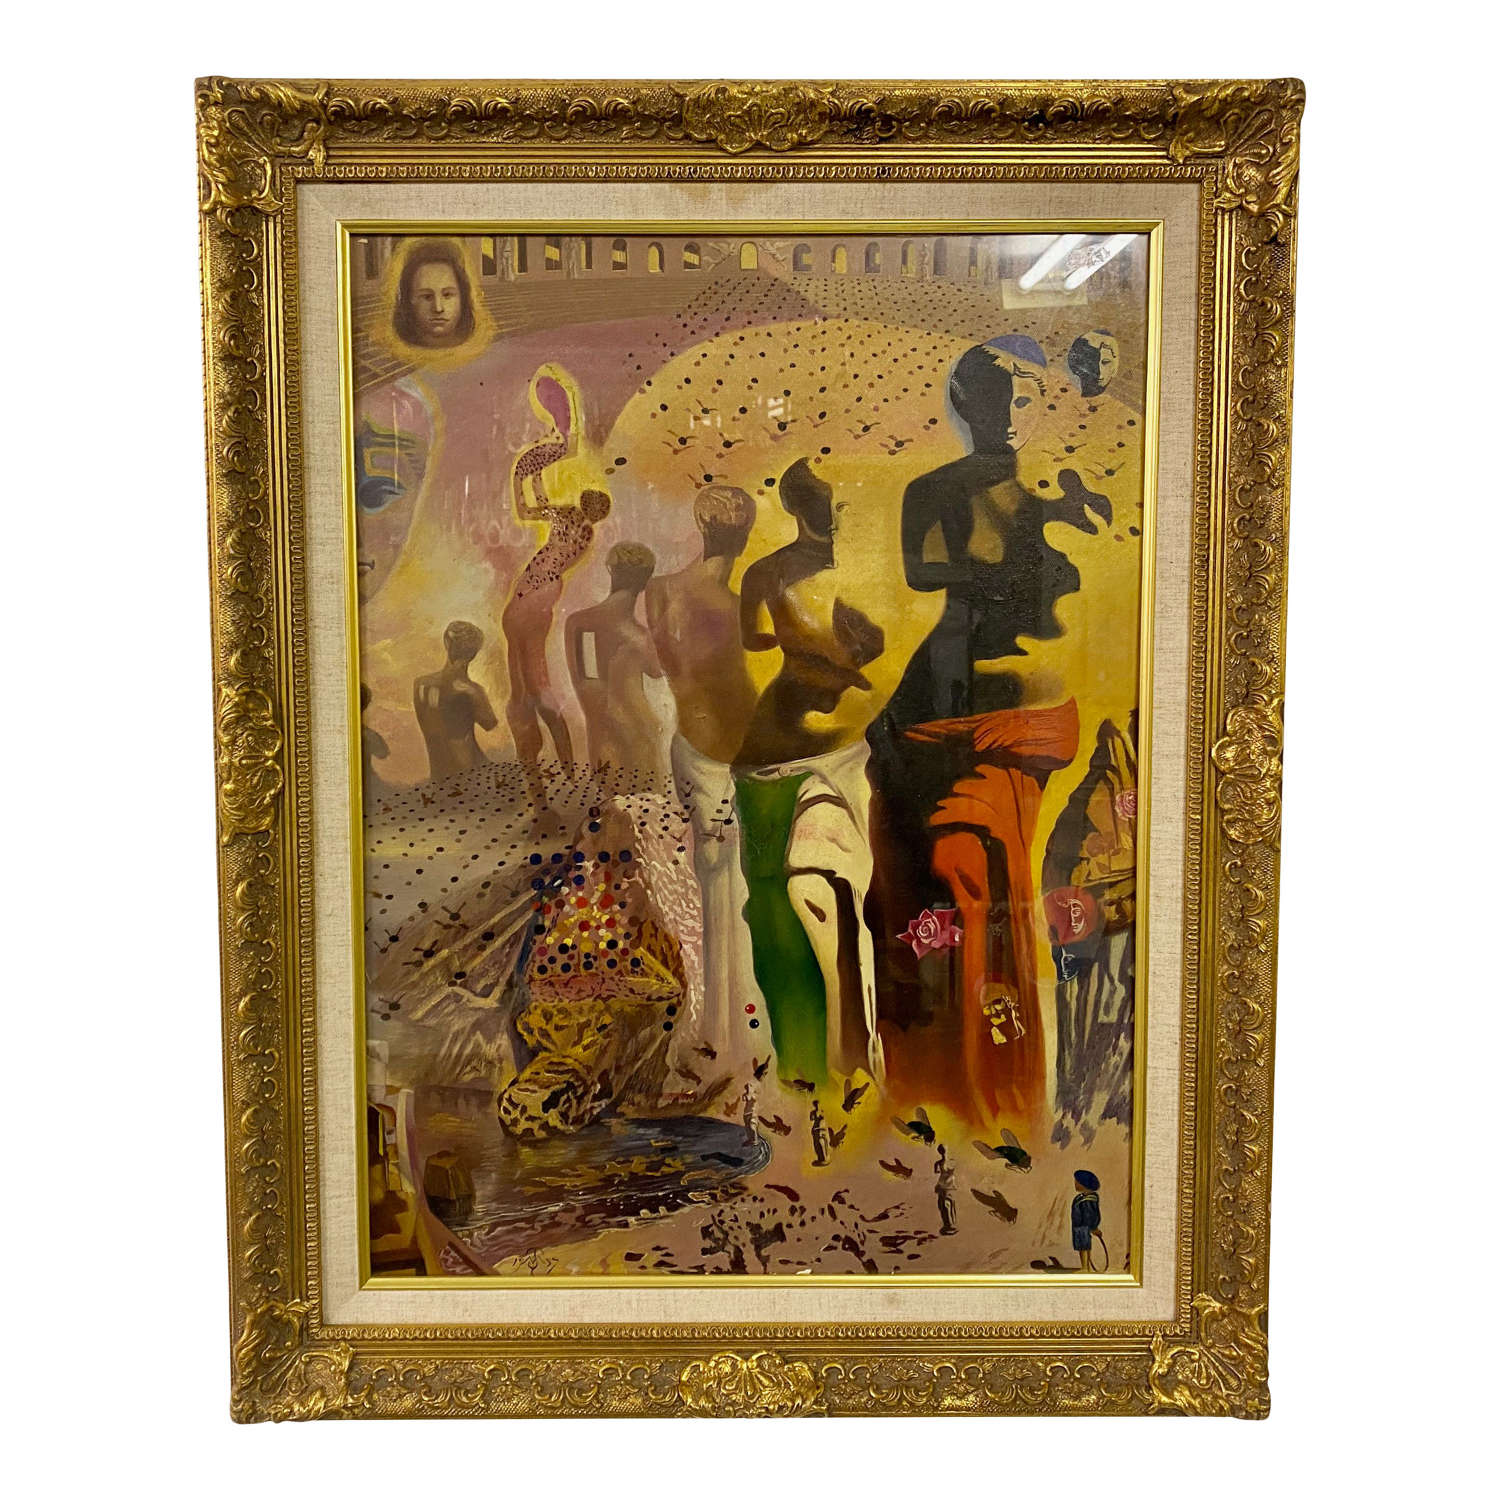 1950s Surrealist Oil Painting after Dali